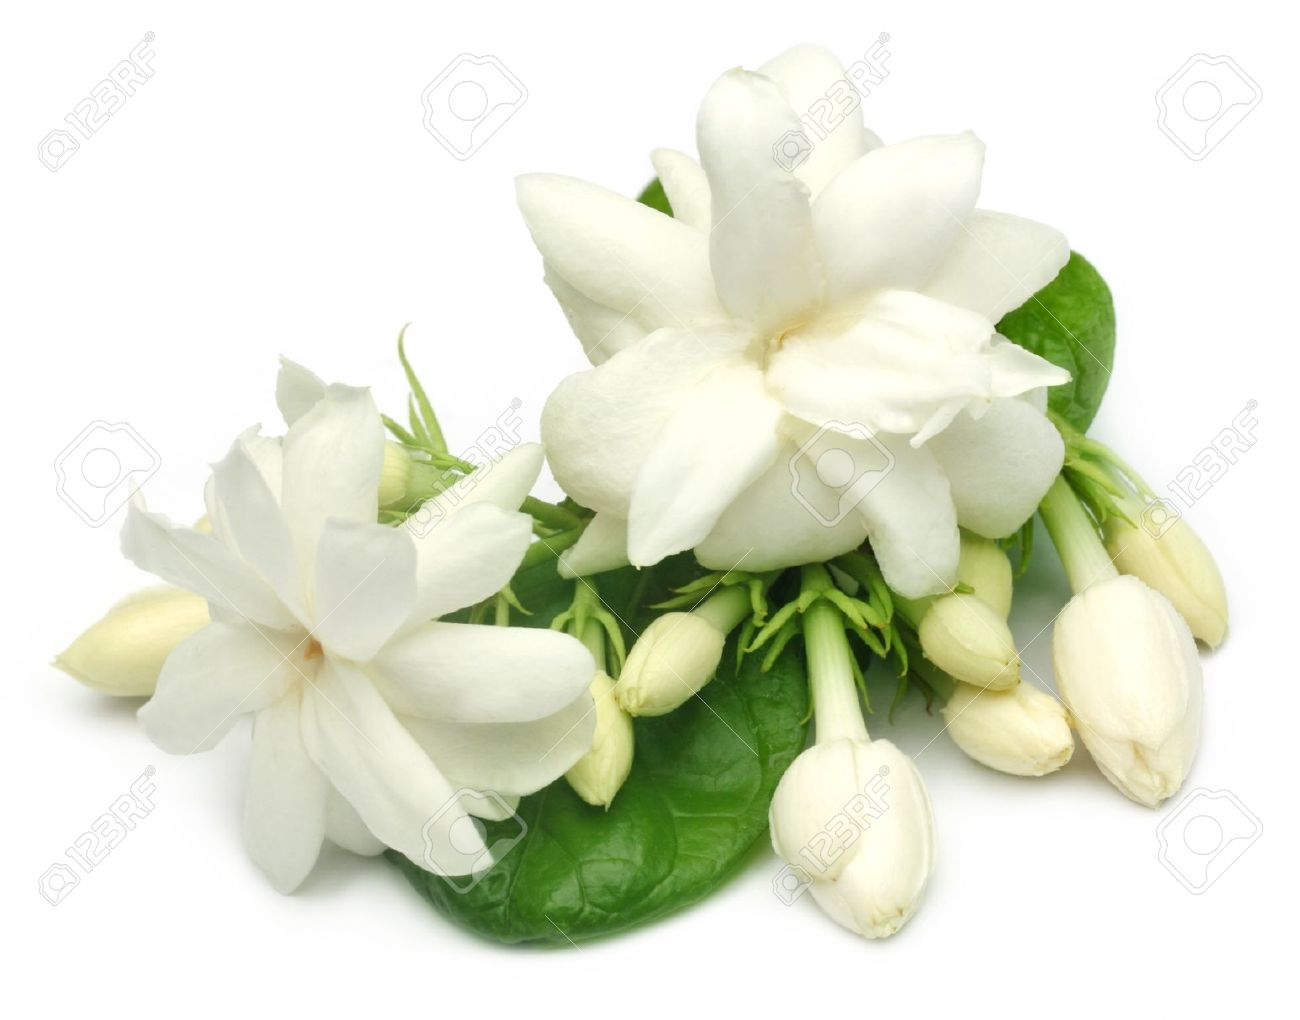 jasmine flower stock photos u0026 pictures royalty free jasmine